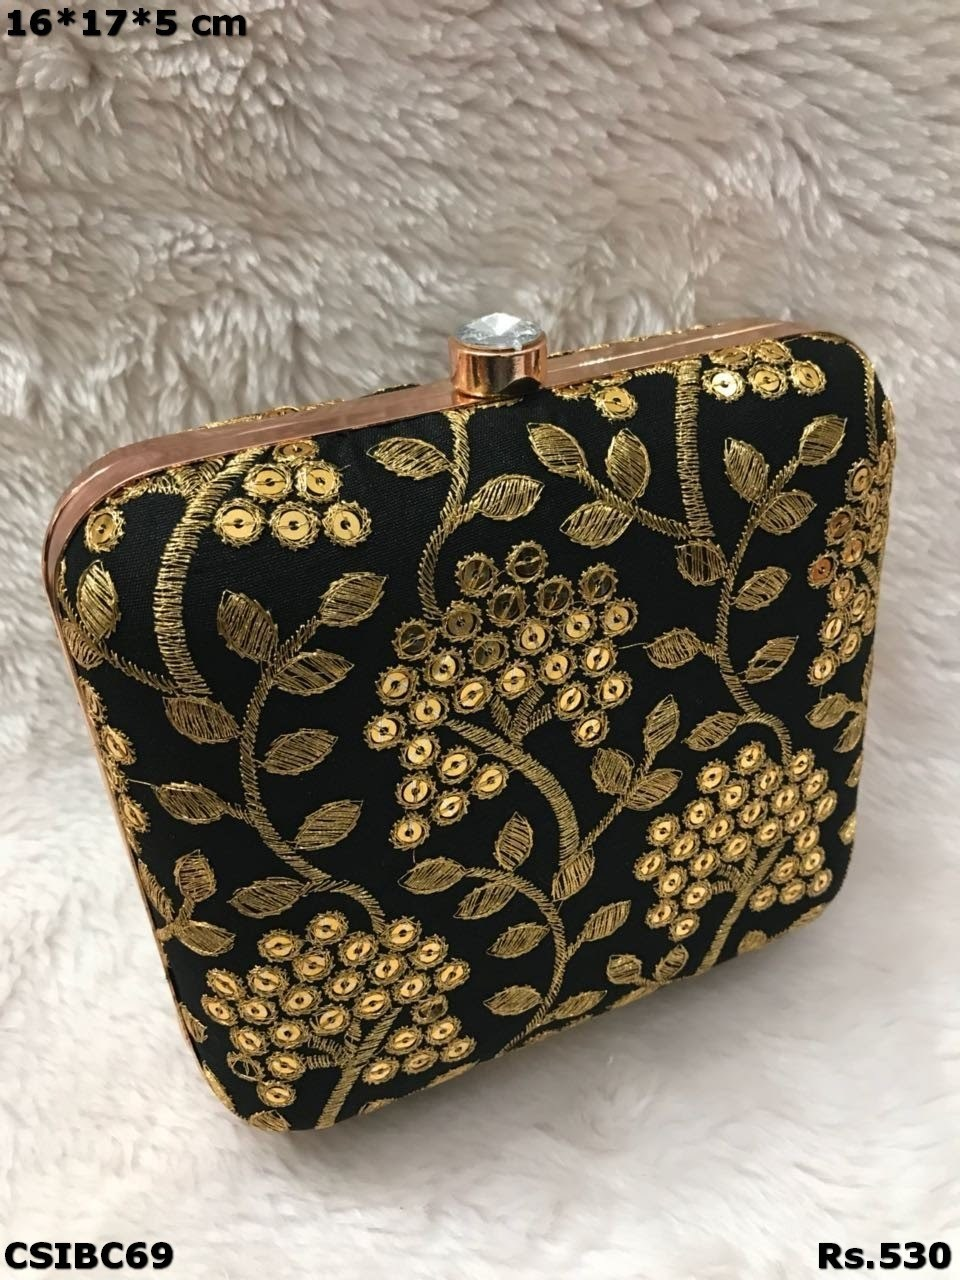 Embroidered Colourful Box Clutch